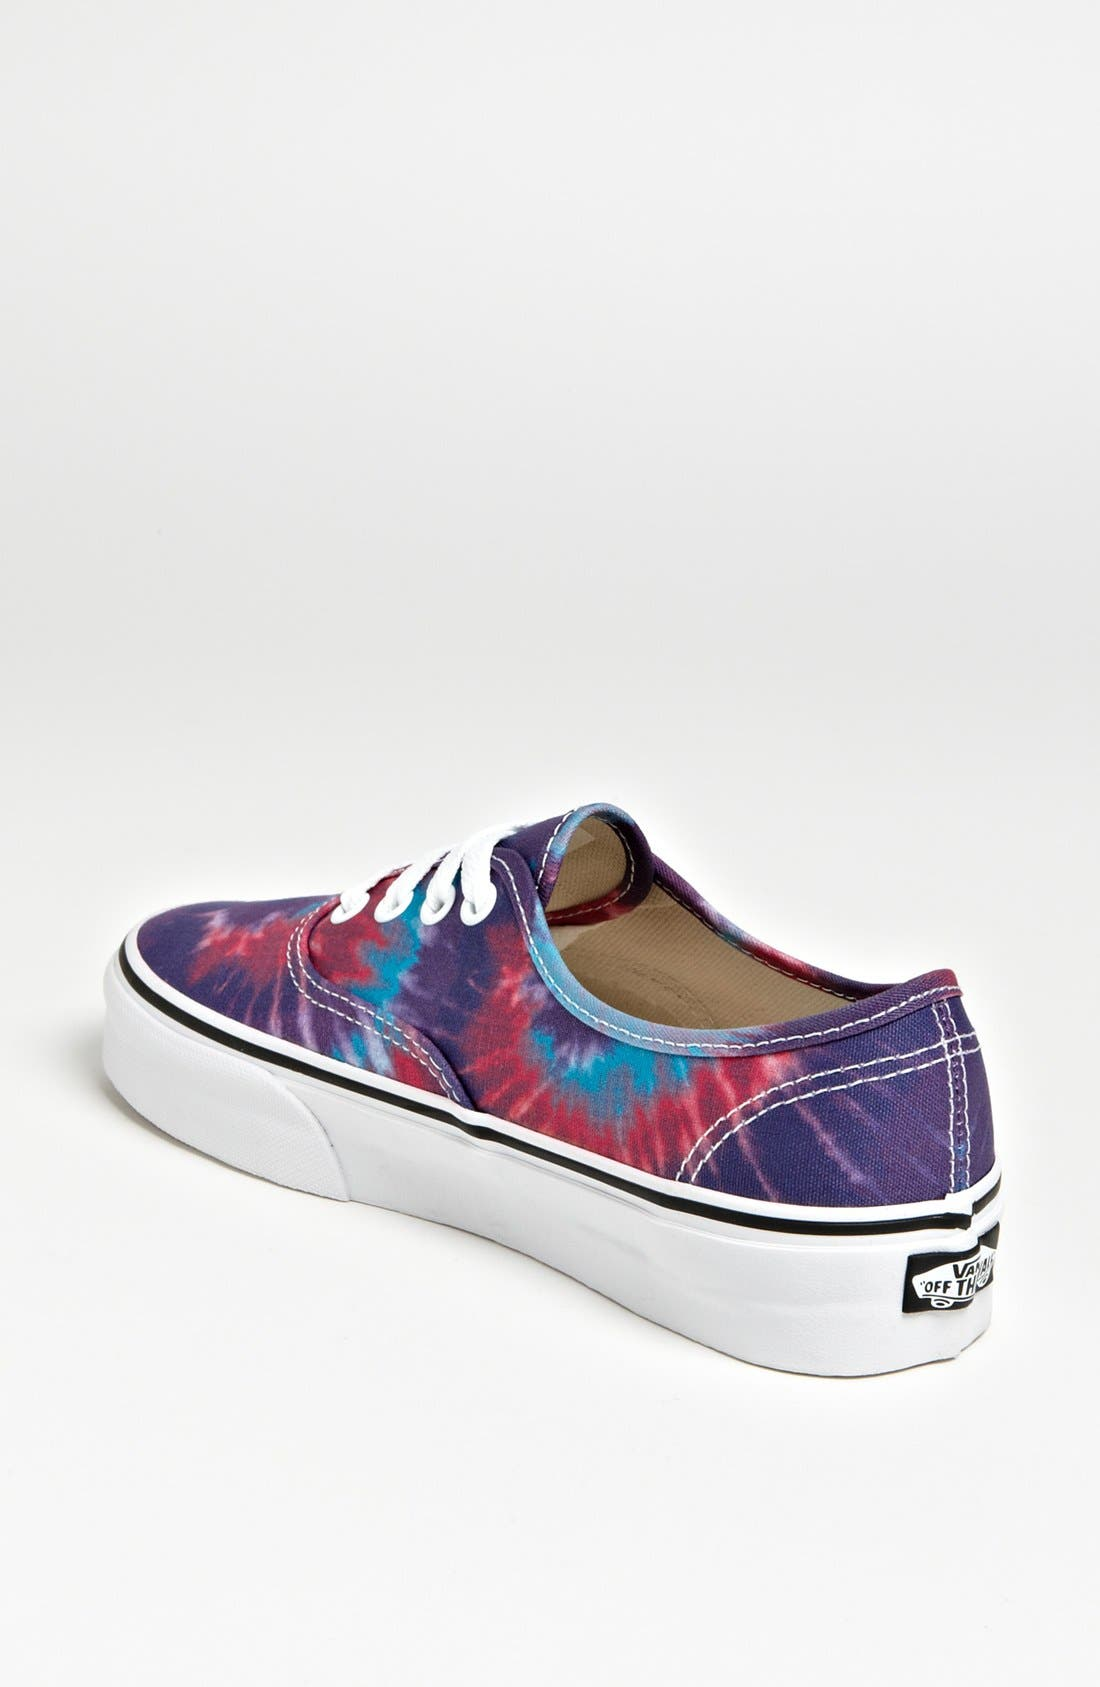 Alternate Image 2  - Vans 'Authentic - Tie Dye' Sneaker (Women)